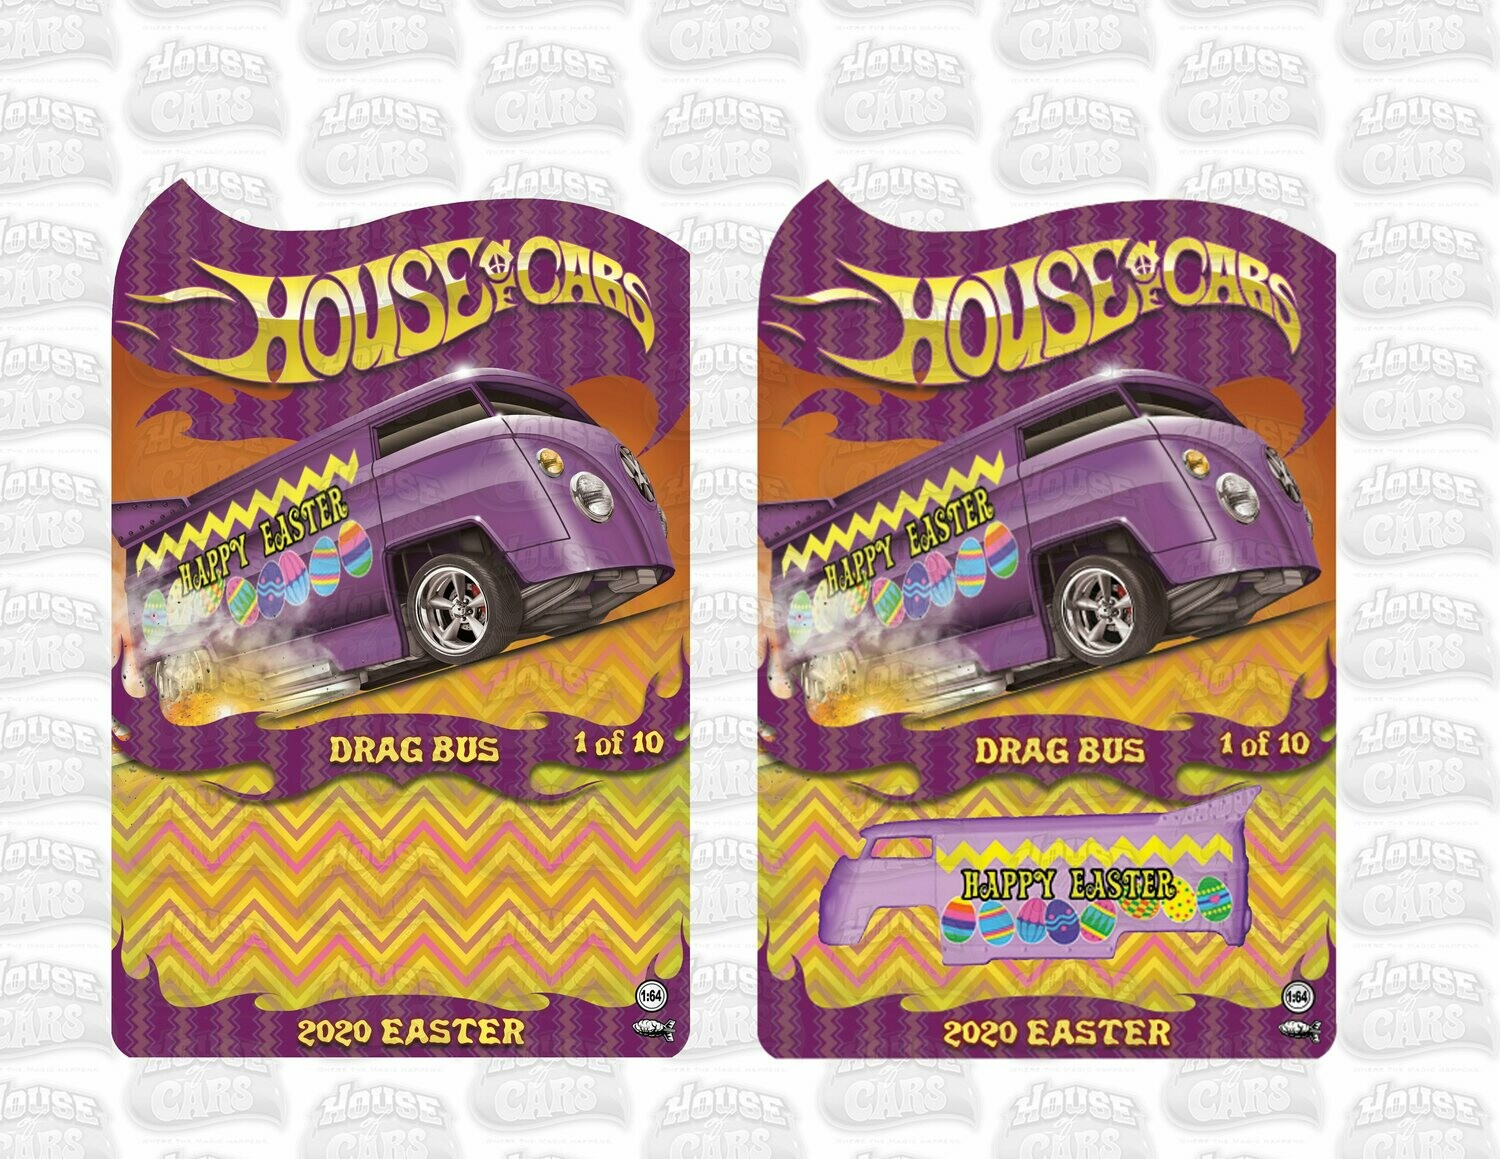 2020 April Easter Series VW Drag Bus 1 of 10 Produced